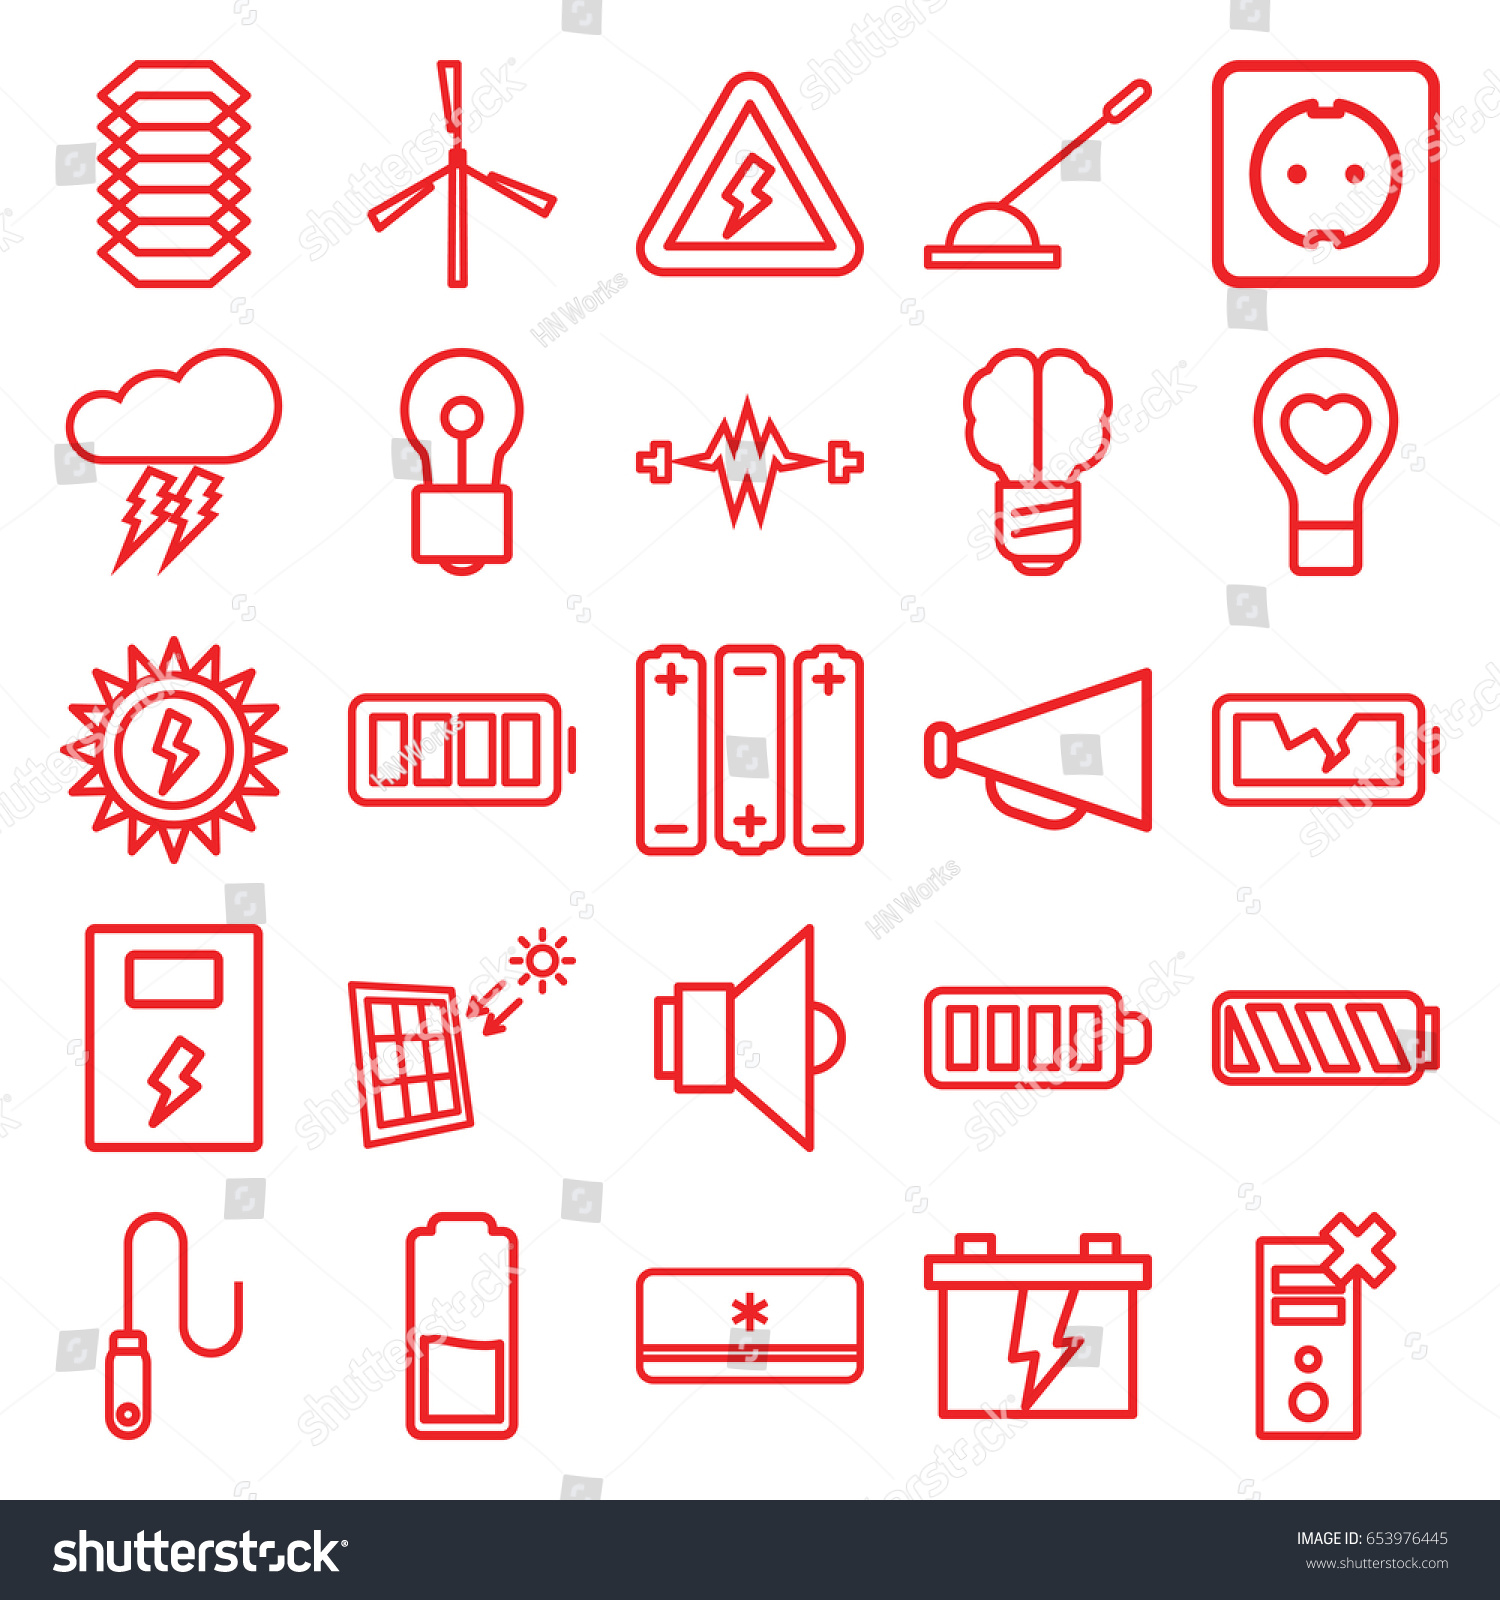 Royalty Free Electricity Icons Set Of 25 653976445 Stock Plug Sockets And Wiring For Image Outline Such As Mill Bulb Megaphone Battery Heart Baterry Arm Lever Wire Ful